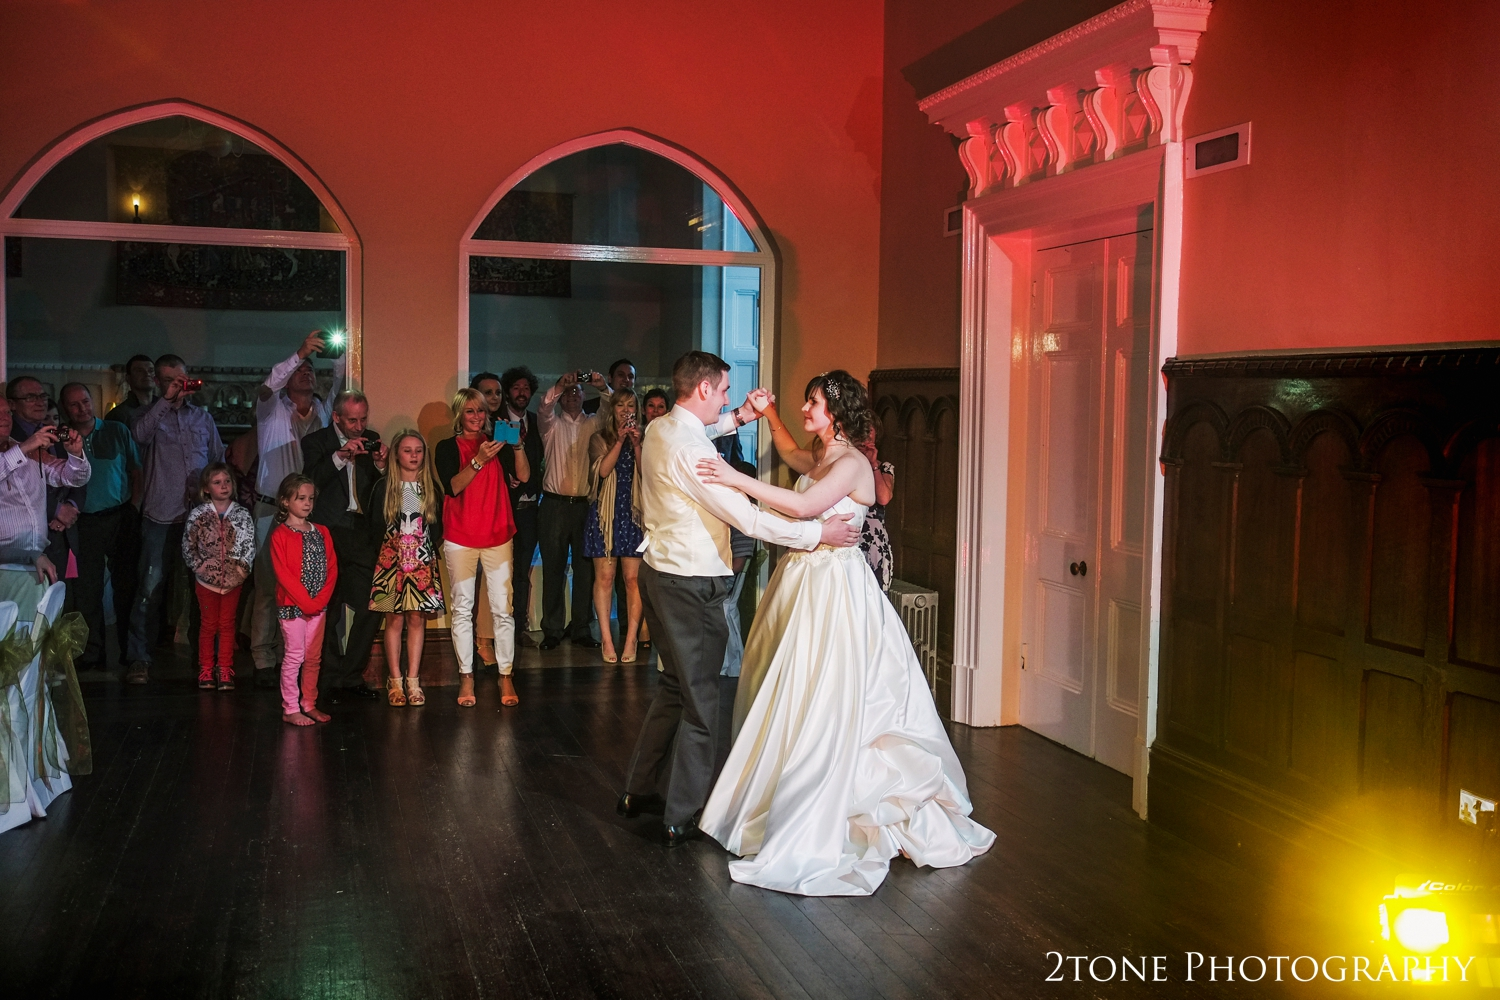 Emma and David wowed us all with their rehearsed first dance.